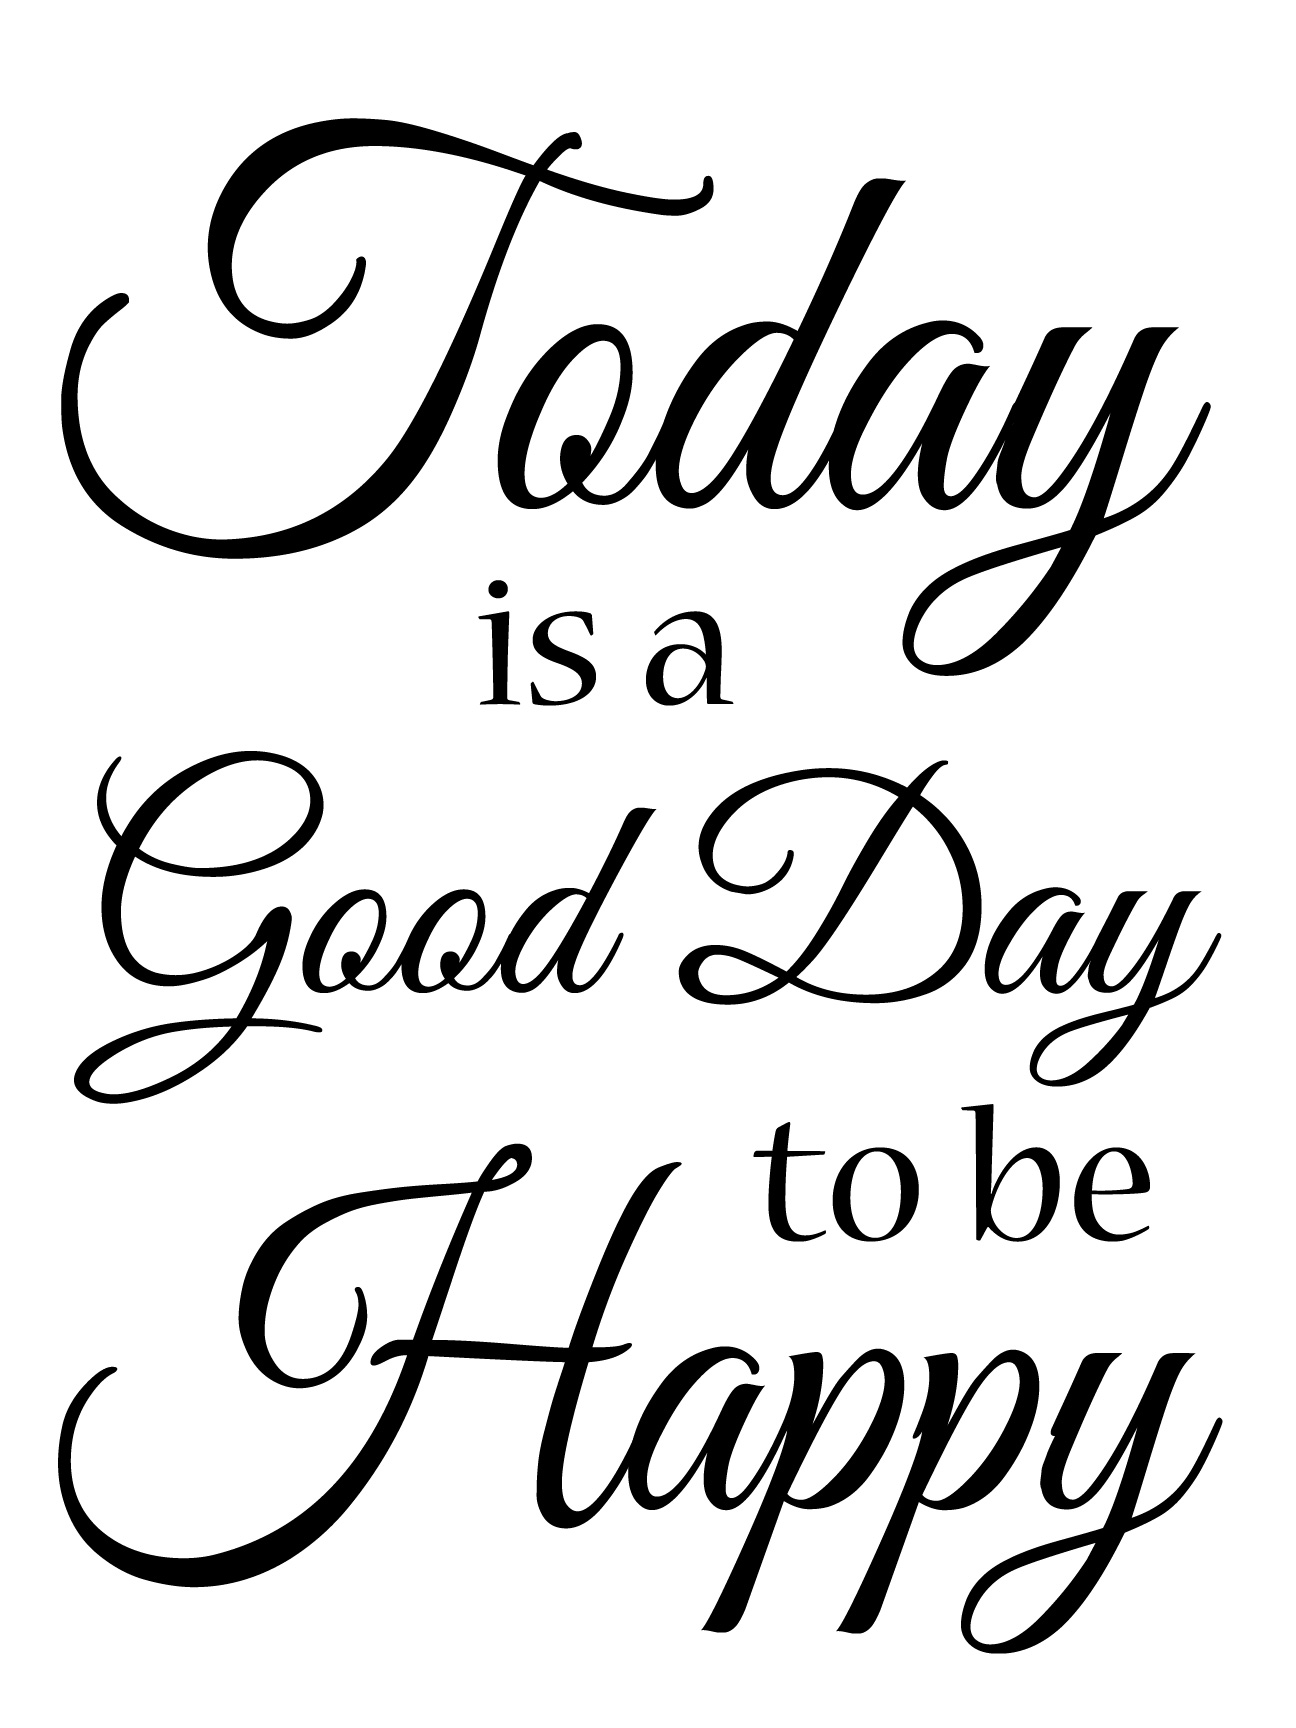 Today-is-a-Good-Day-to-be-Happy